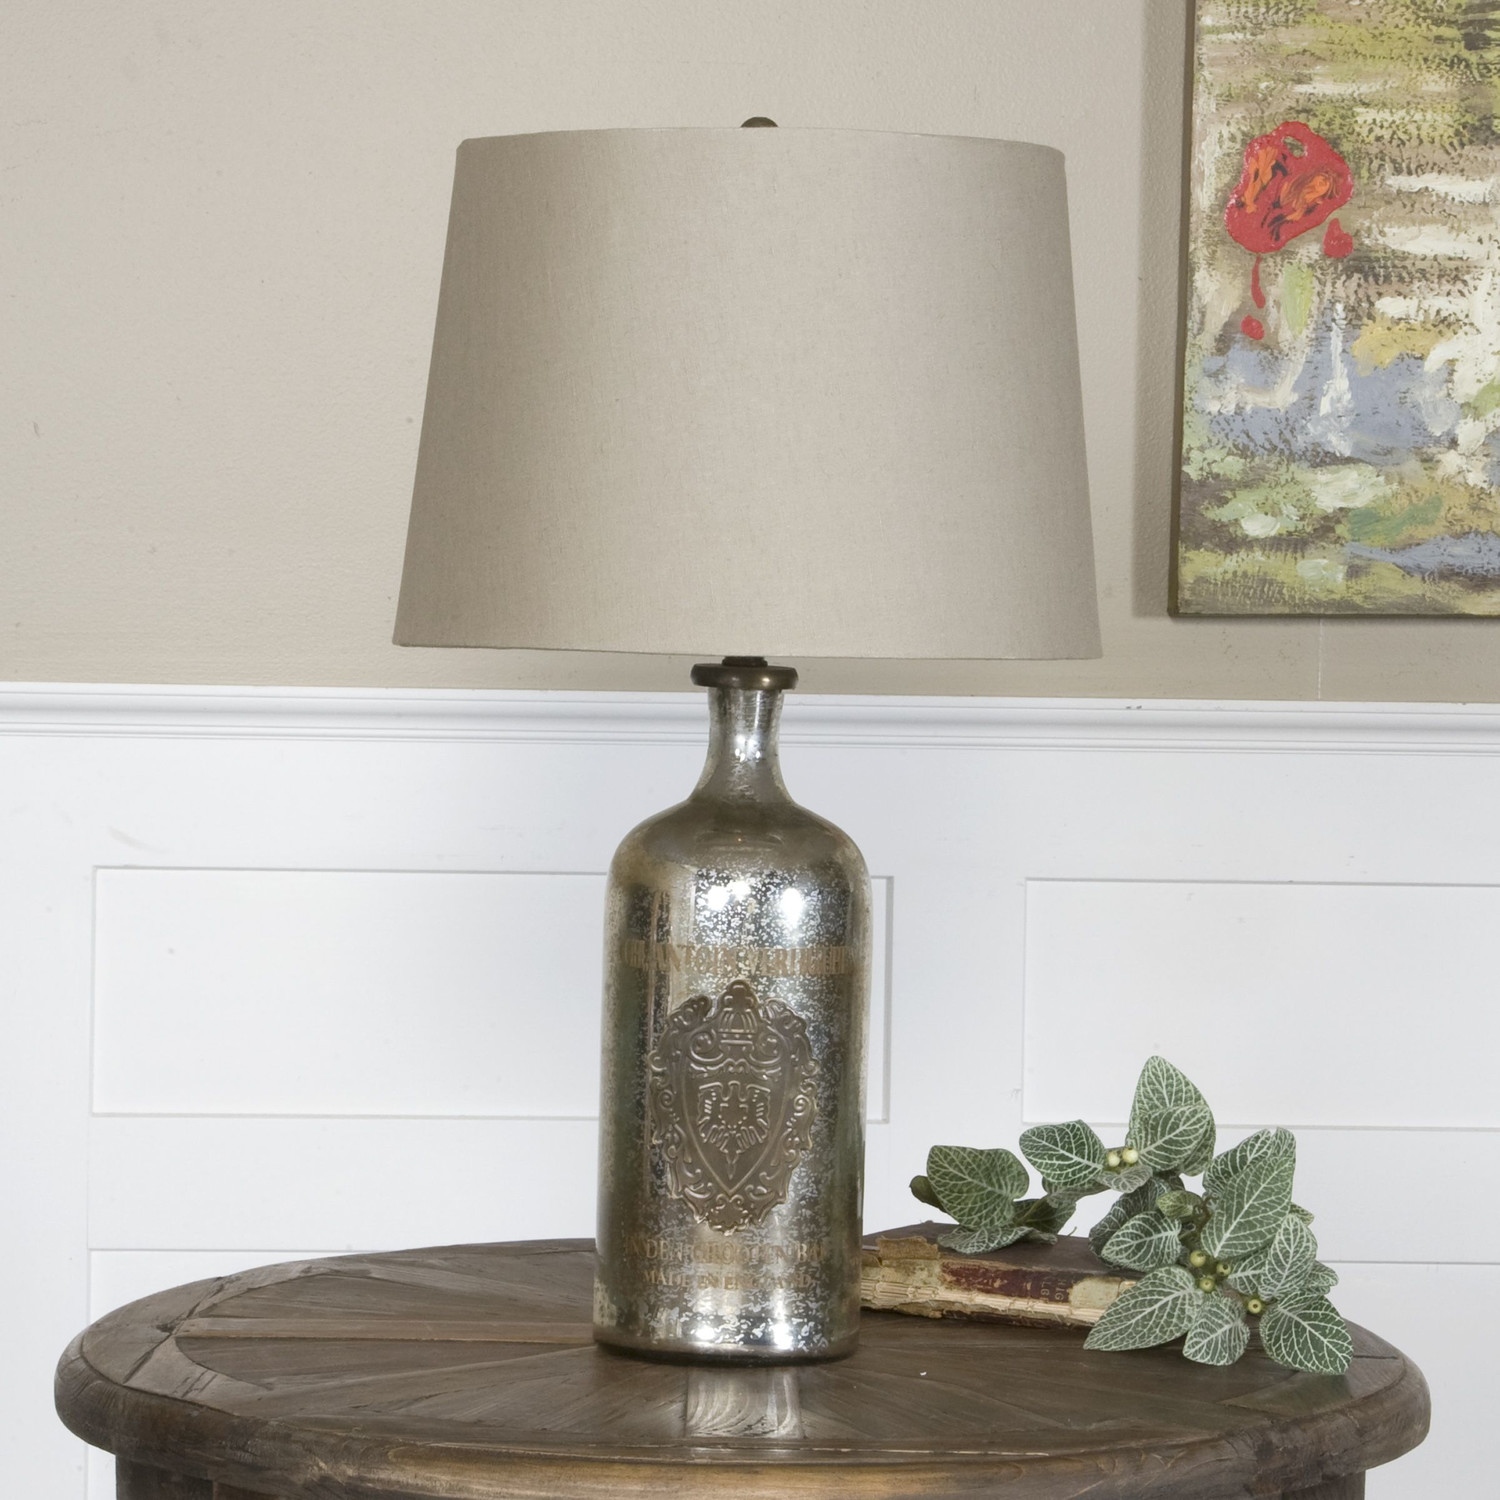 Uttermost-Borel-23-H-Table-Lamp-with-Empire-Shade-26209.jpg